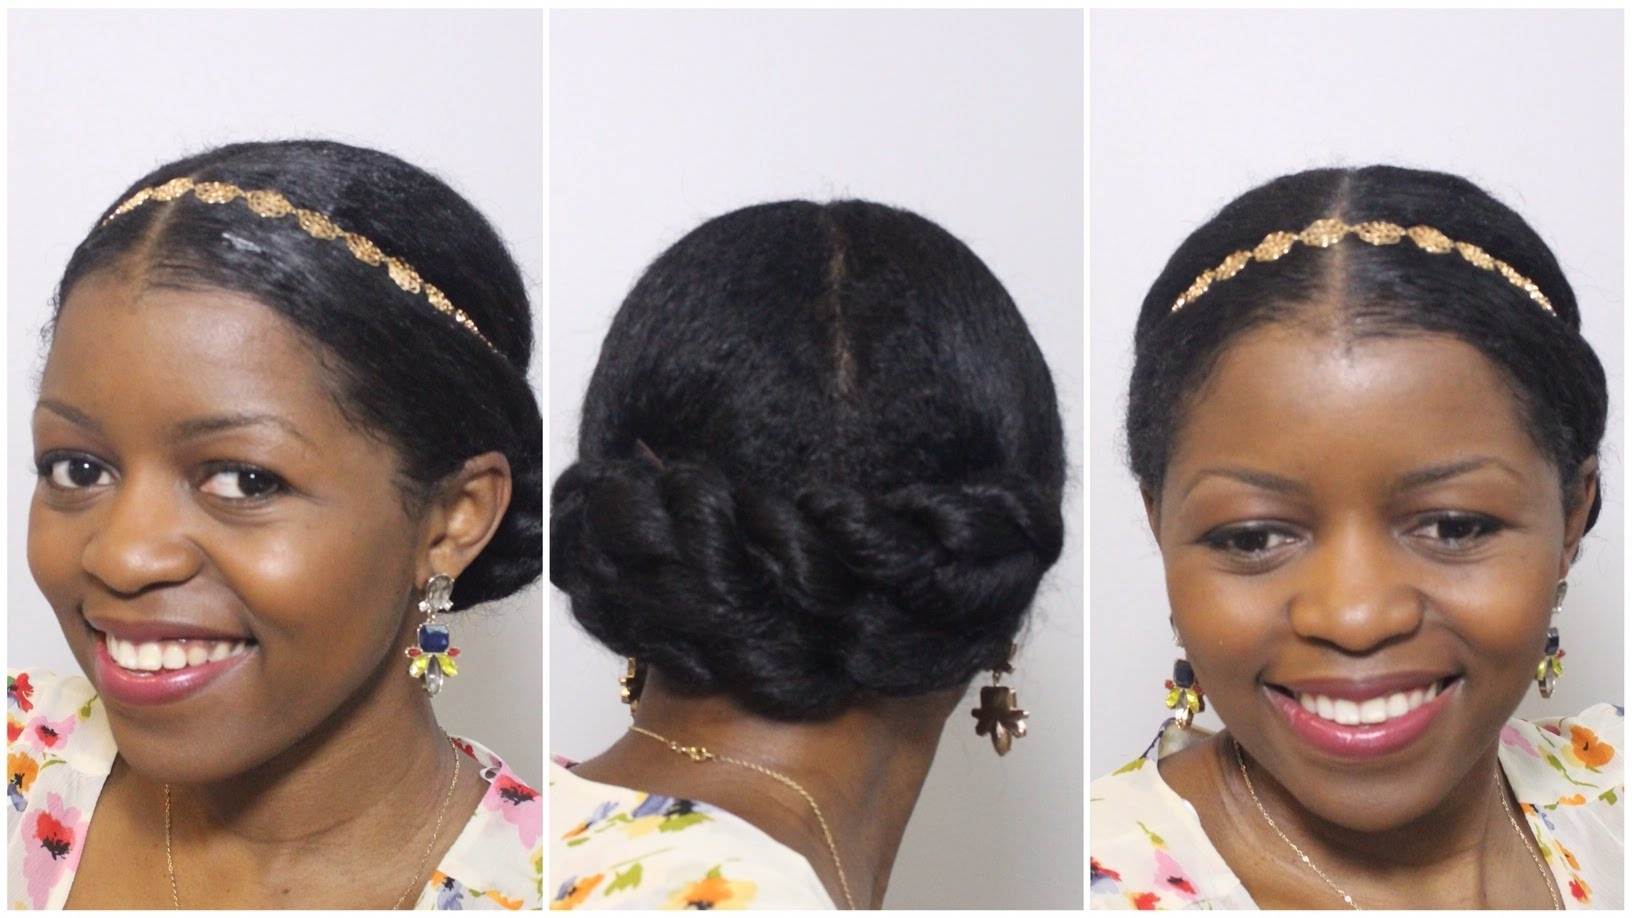 Elegant Twisted Bun Updo Perfect For Formal/wedding Occasion Intended For Natural Hair Updo Hairstyles For Weddings (View 4 of 15)